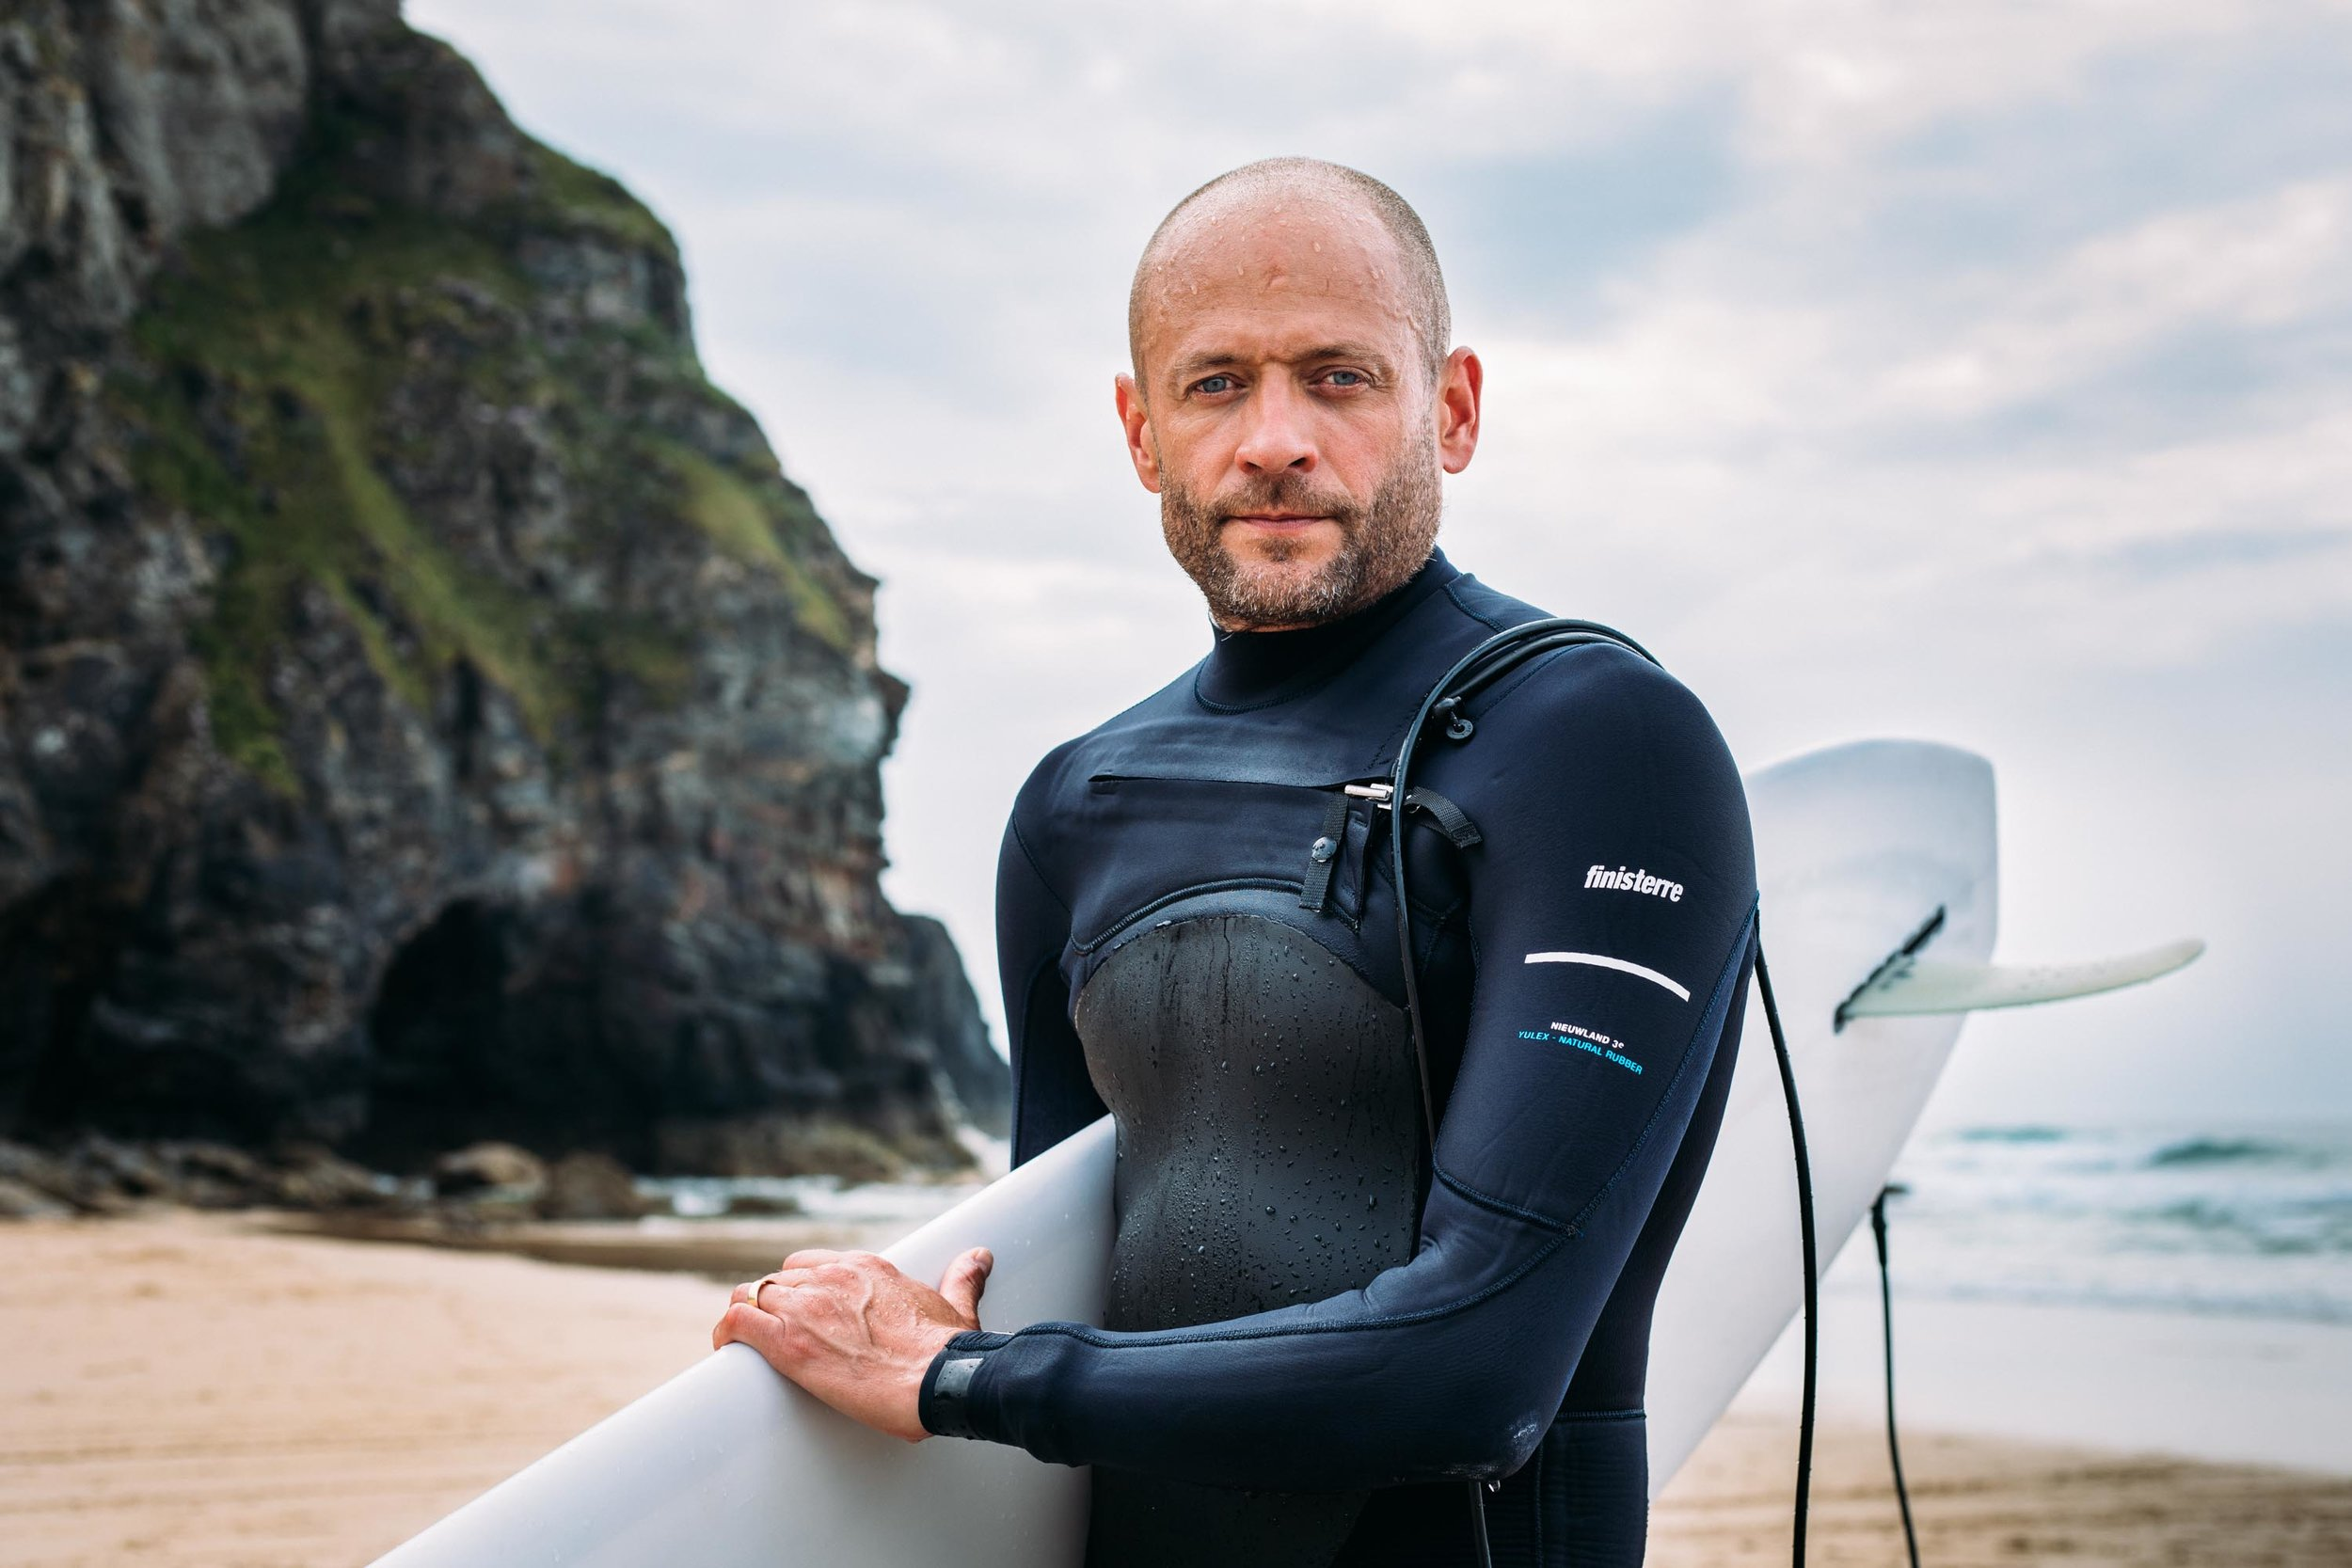 Chief Executive of Surfers Against Sewage, Hugo Tagholm after a surf at Porthtowan Beach, St Agnes, Cornwall, UK. 29th May 2018.